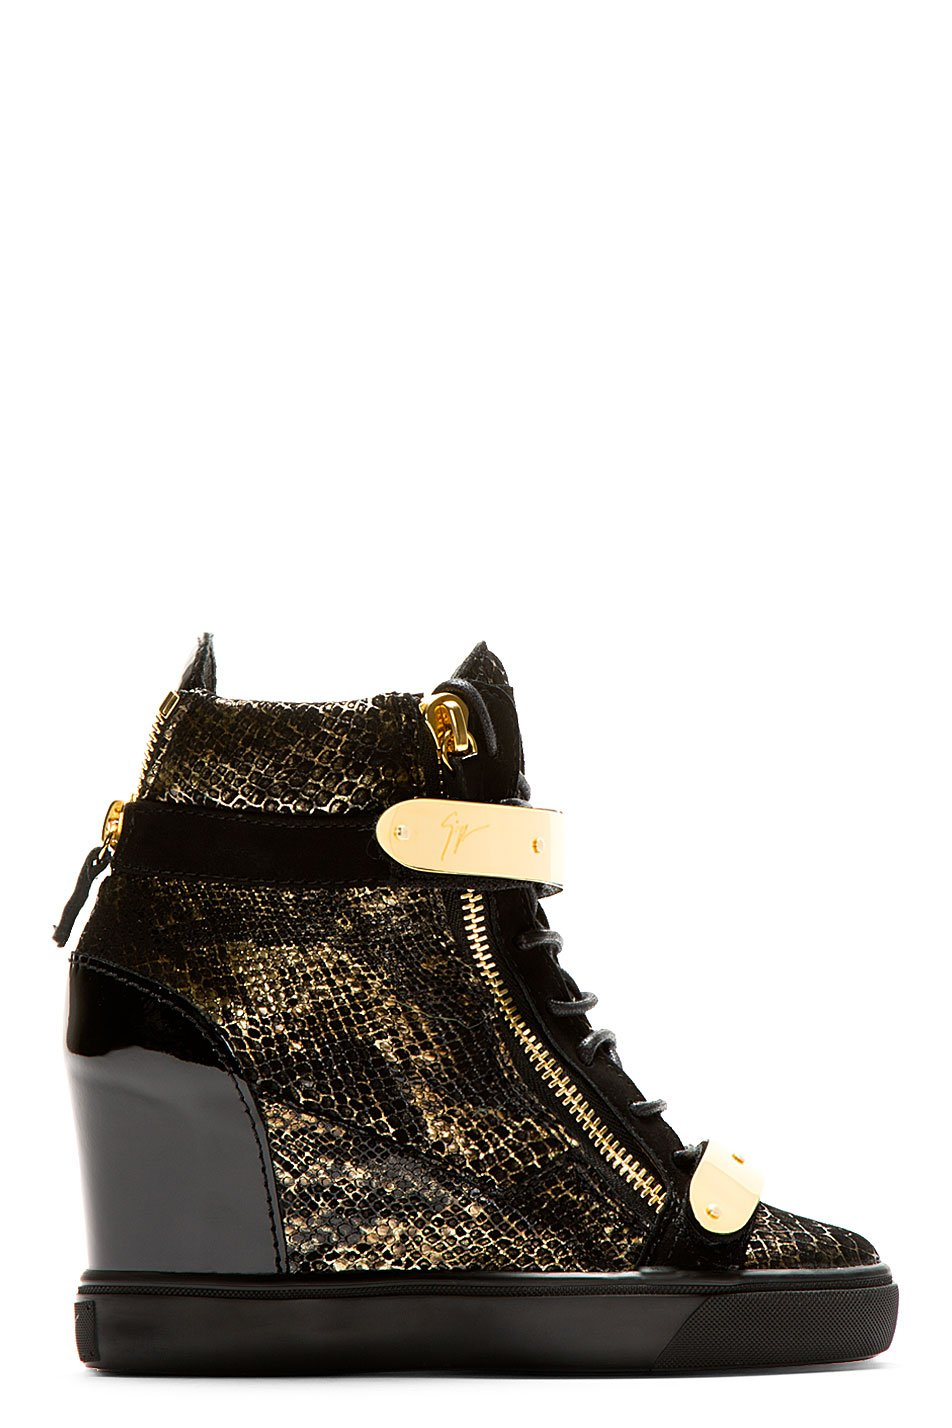 Giuseppe zanotti black and gold lorenz high_top wedge sneakers